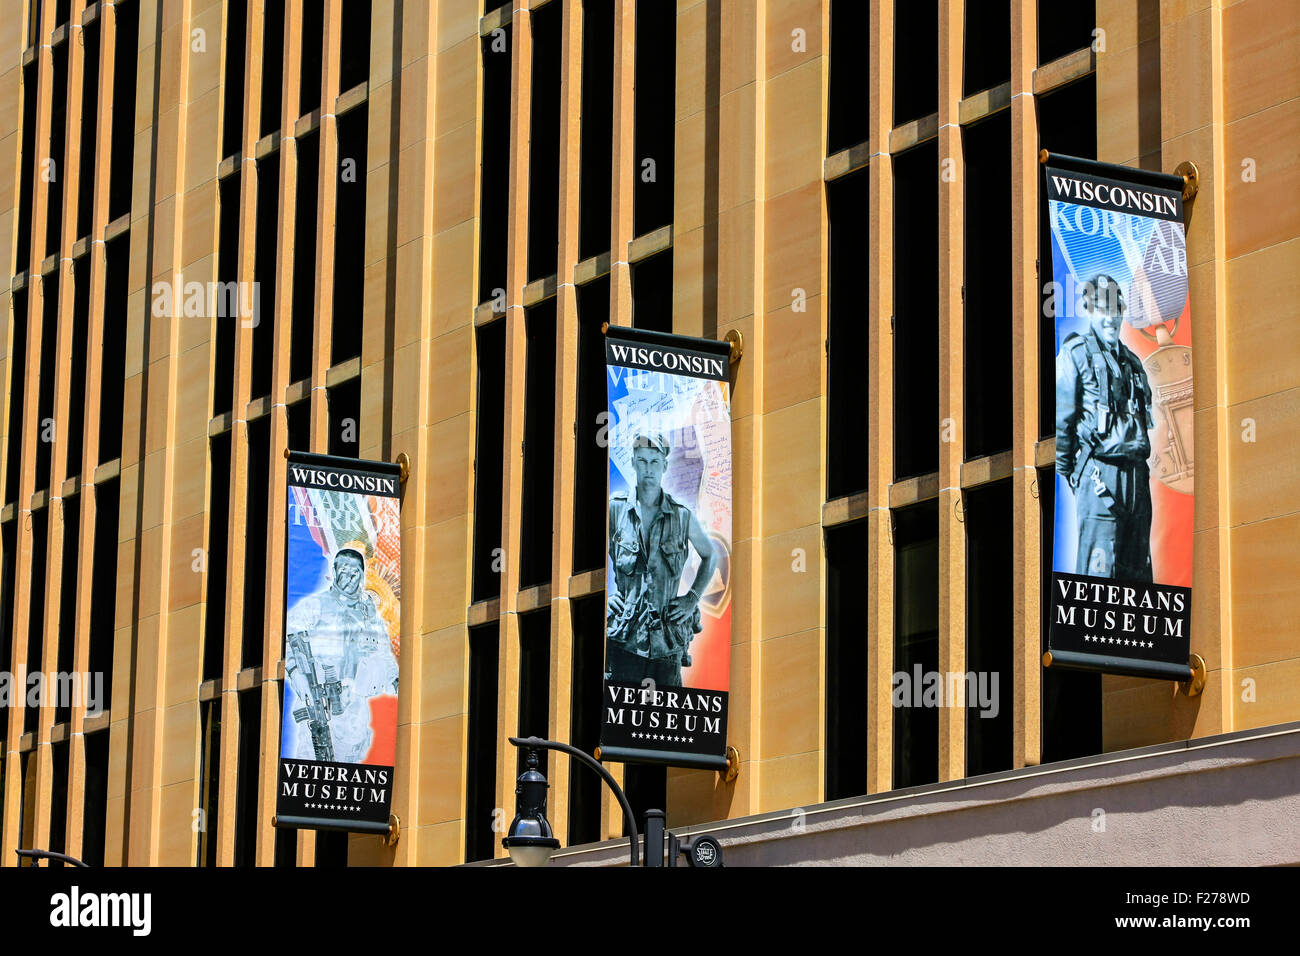 The Wisconsin Veterans Museum banners on the building in downtown Madison - Stock Image